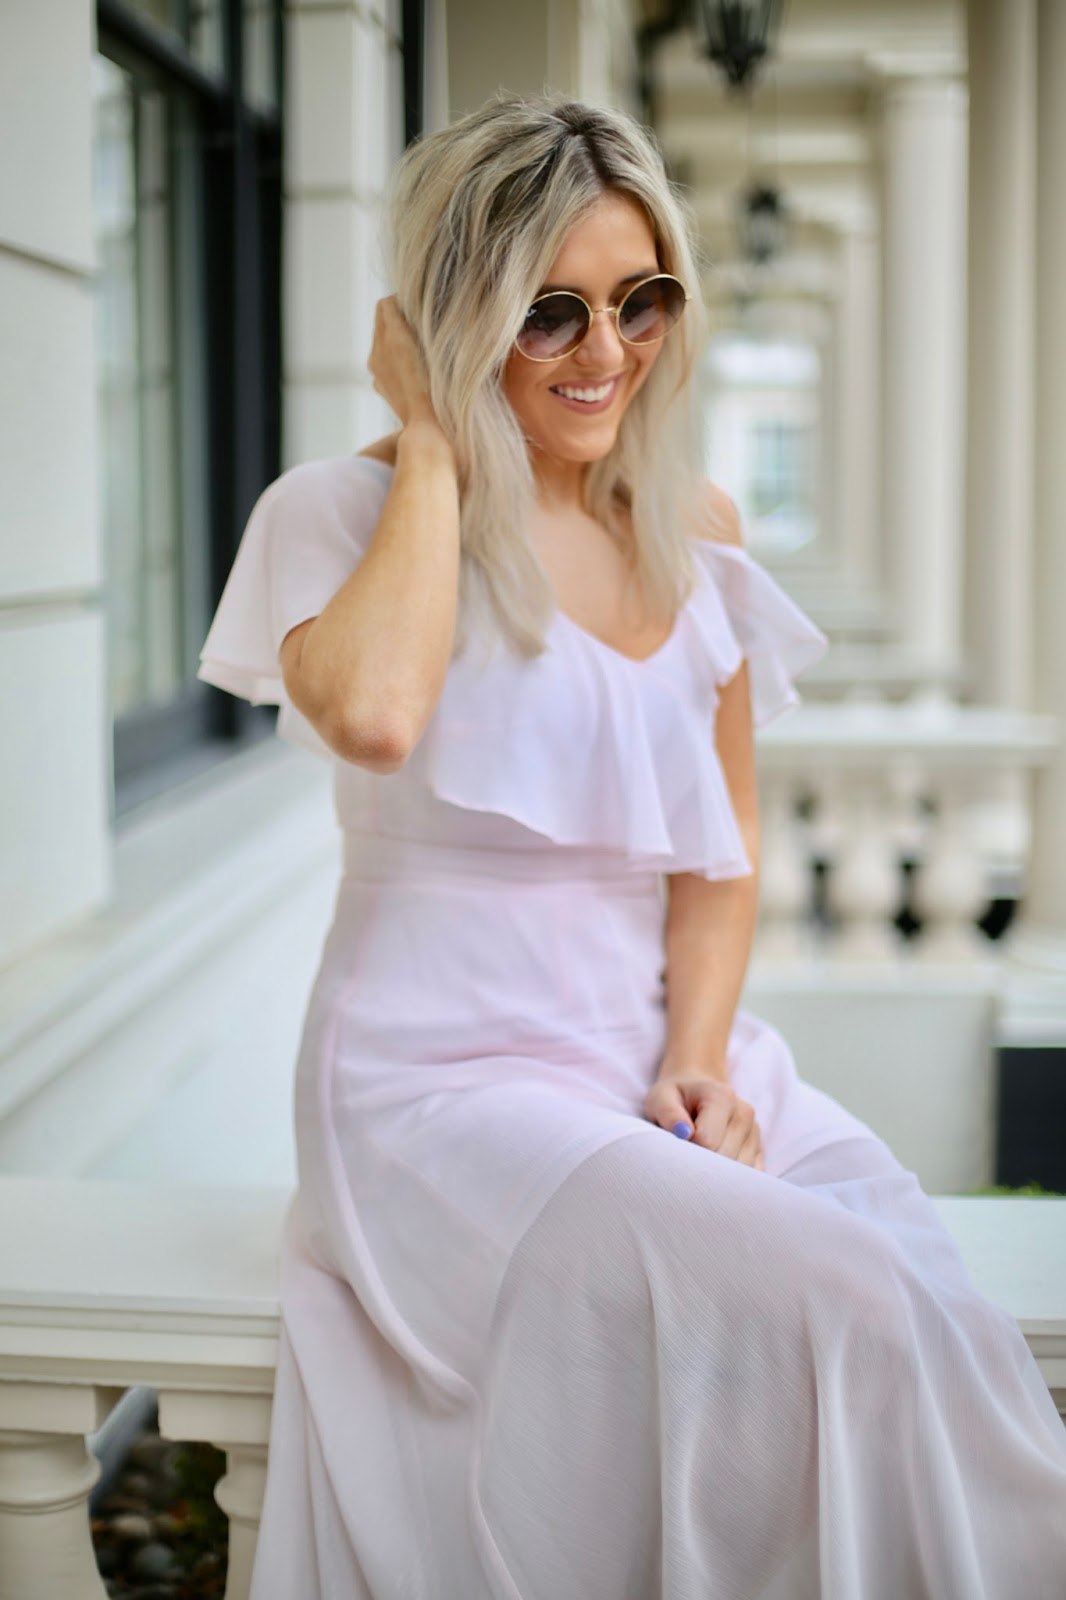 99d82aa9e6e wedding guest styling. COLOUR - I think first and foremost colour is an  important thing to think about. I always seem to fall in love with white  outfits and ...